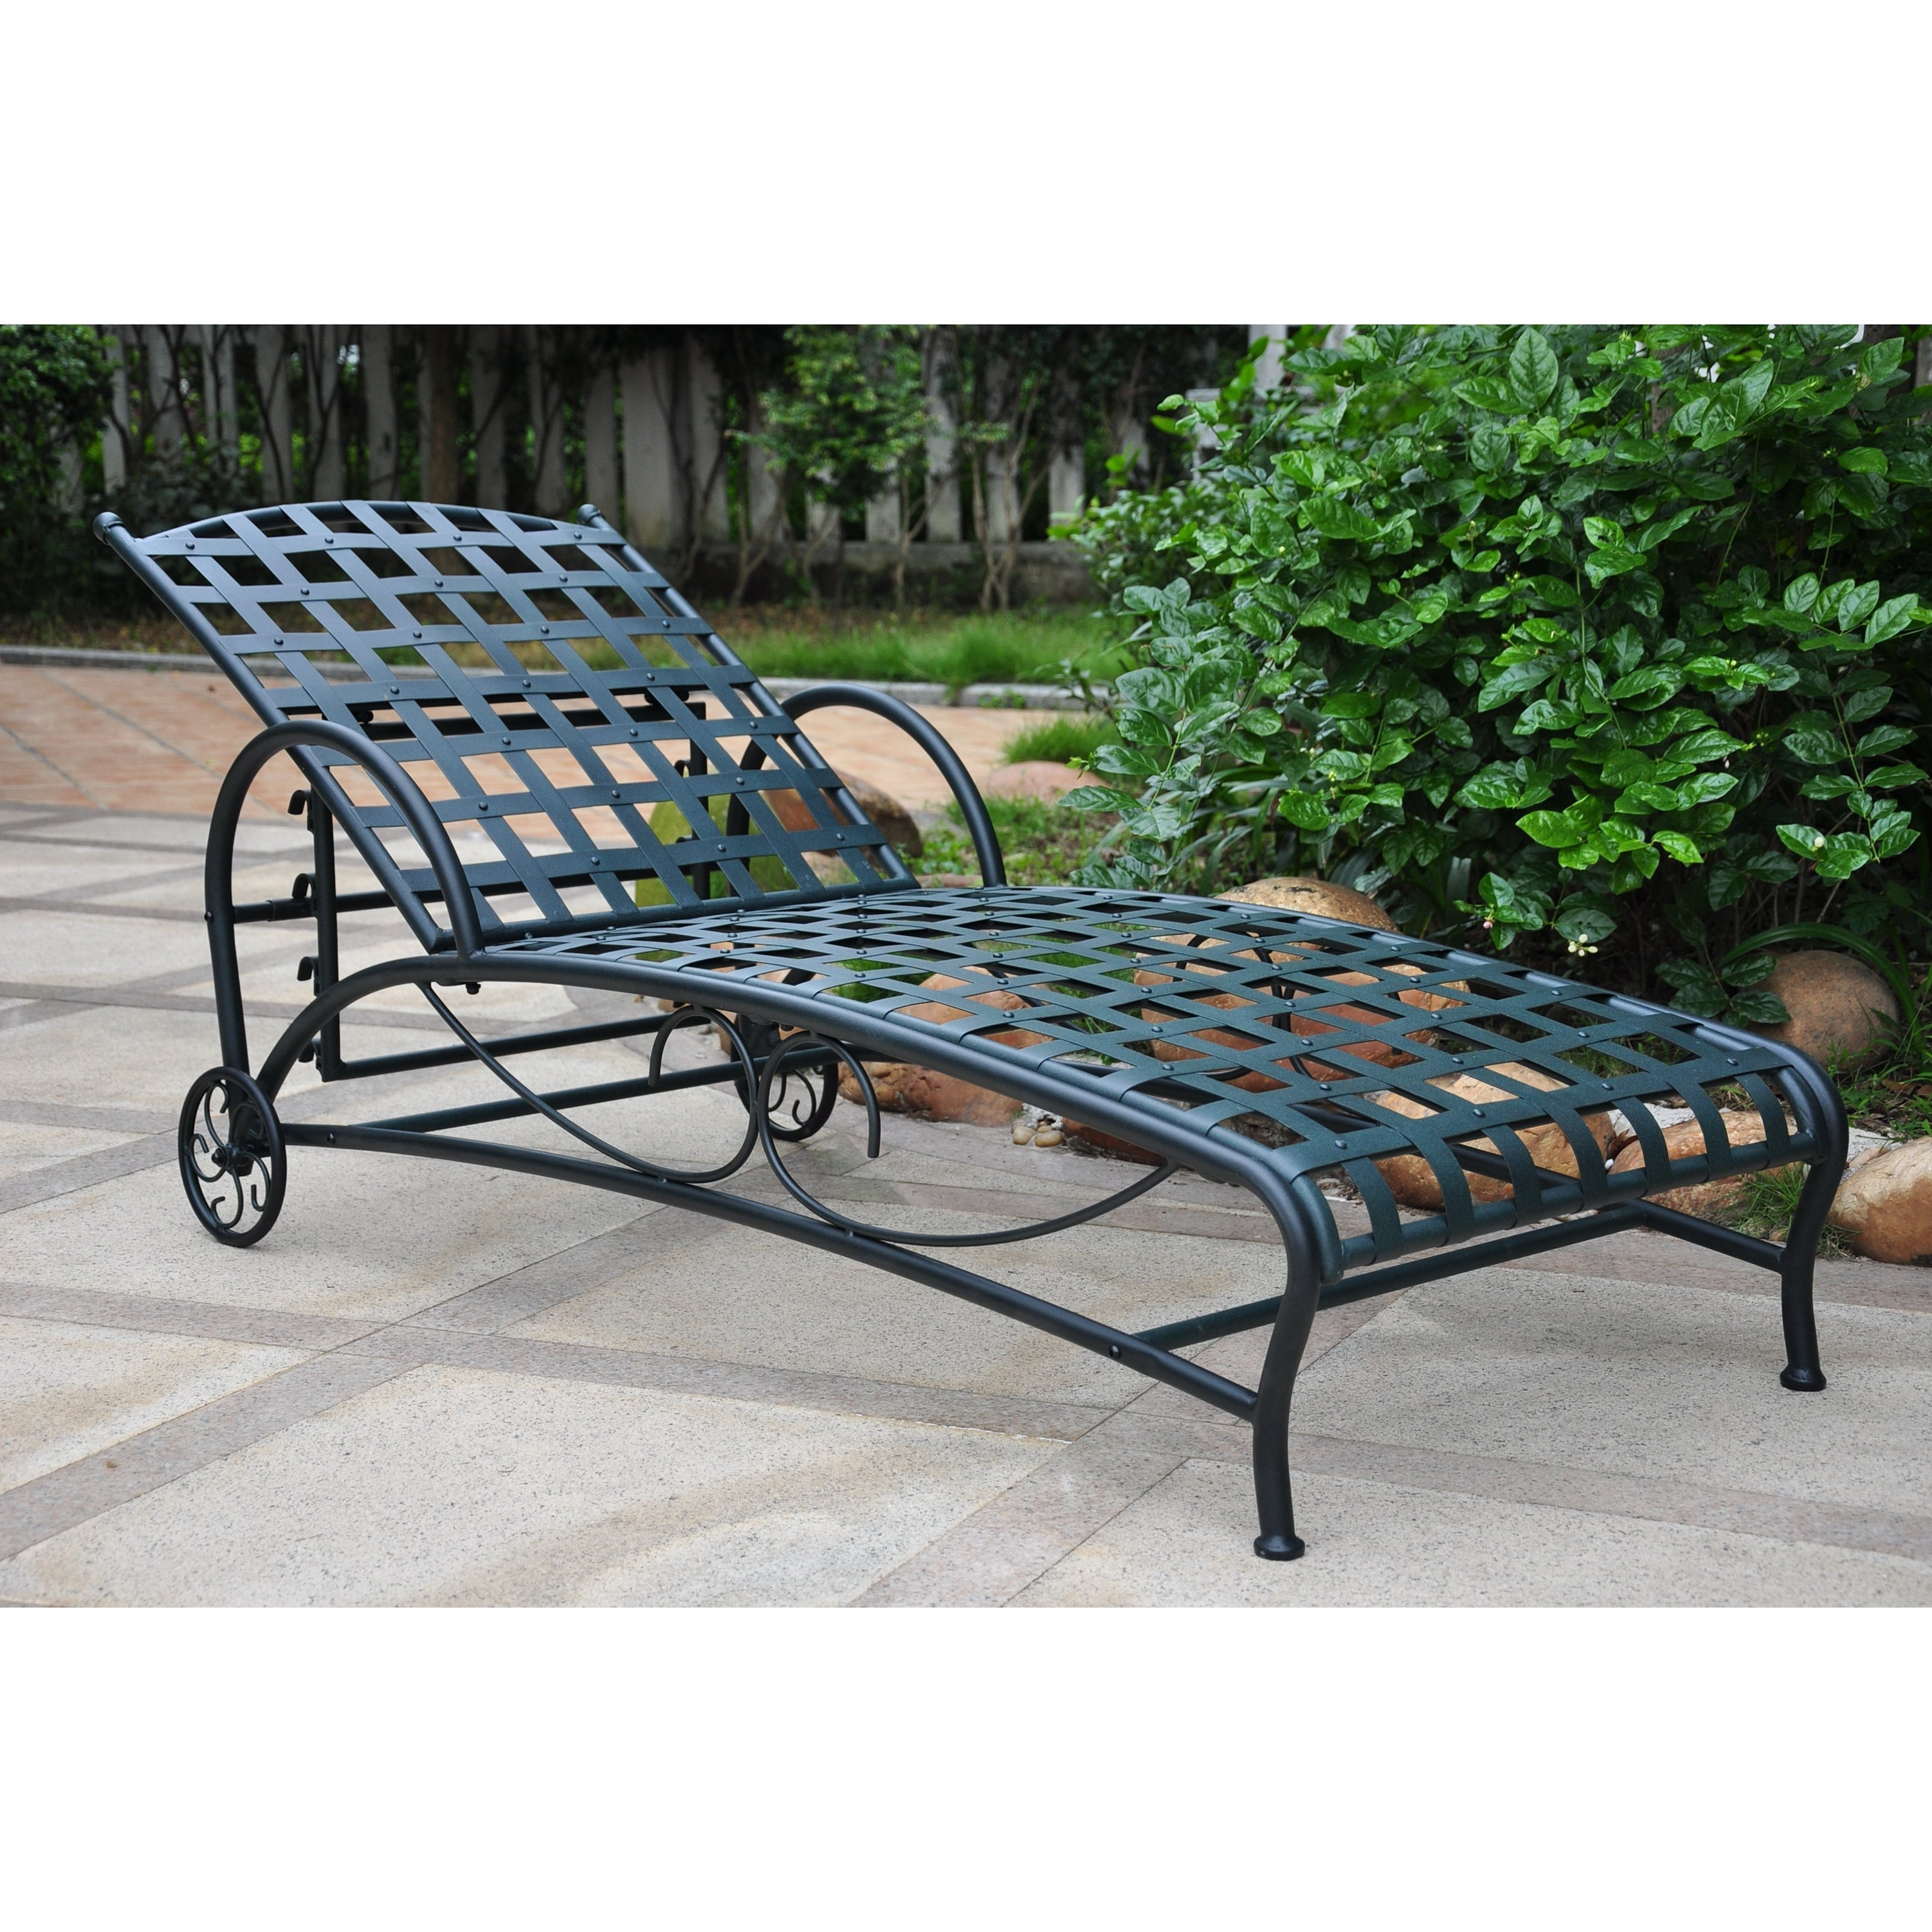 Wrought Iron Chaise Lounge Chairs In Most Popular Wrought Iron Chaise Lounge Chairs Outdoor • Lounge Chairs Ideas (View 7 of 15)